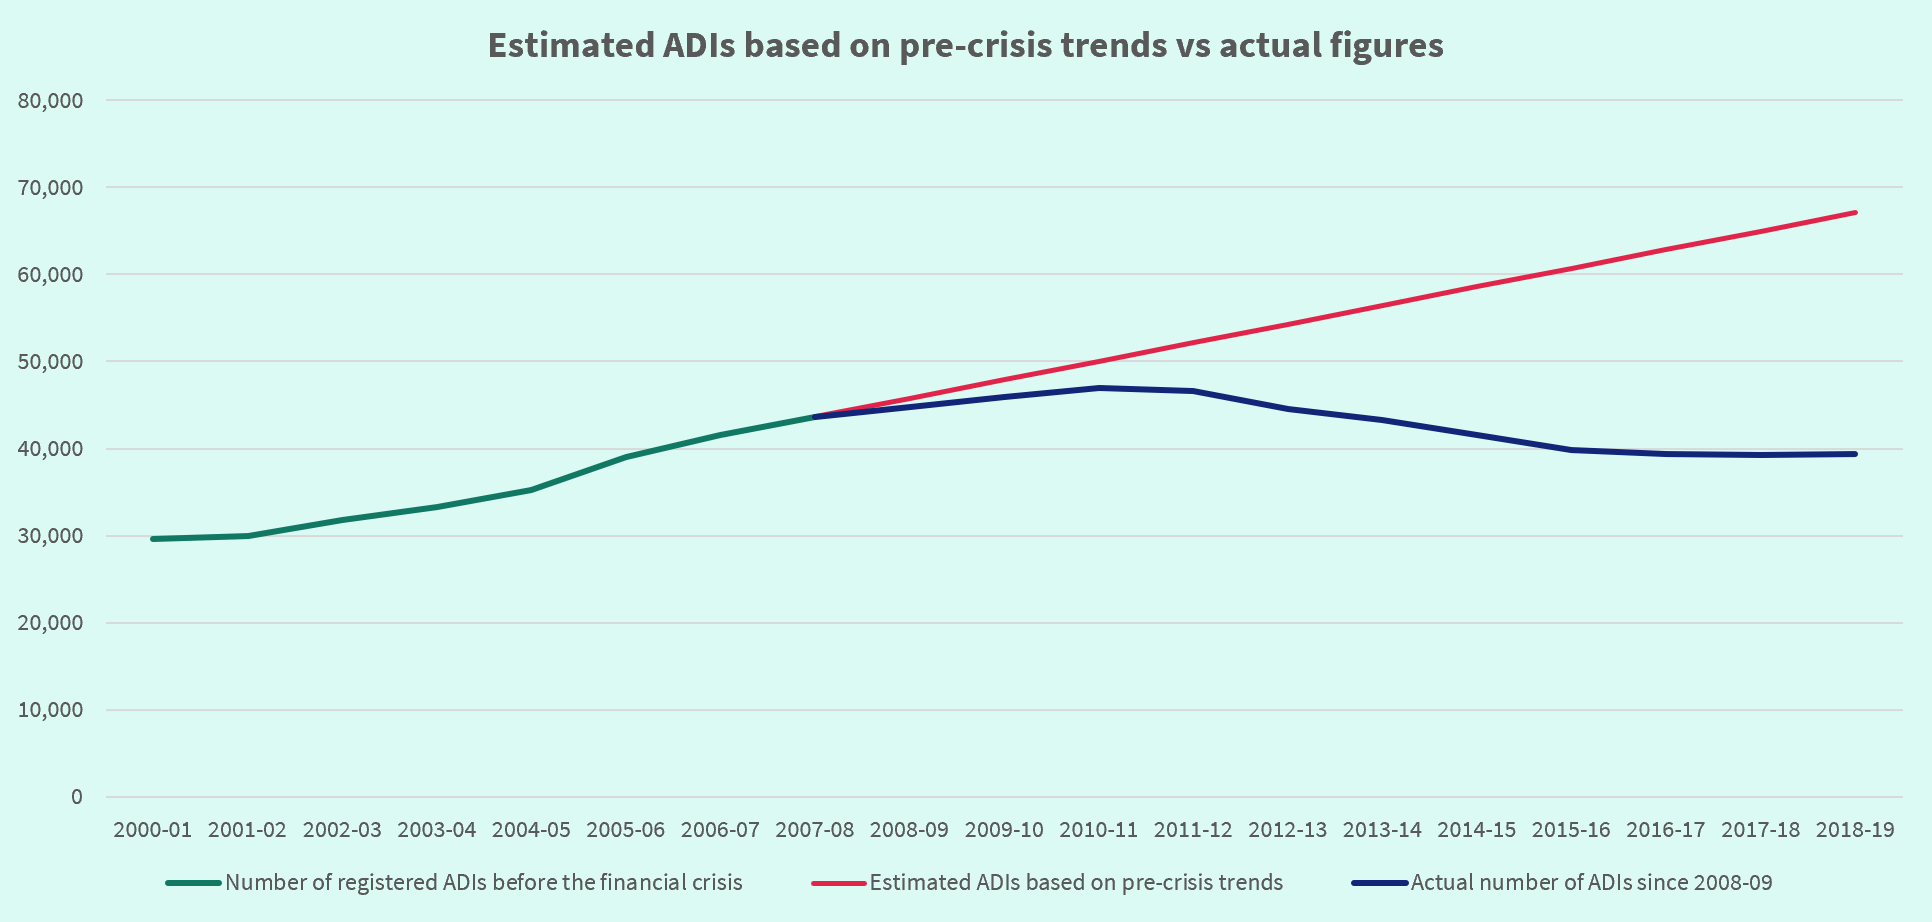 Graph comparing projected ADIs based on pre-crisis trends to actual numbers of ADIs